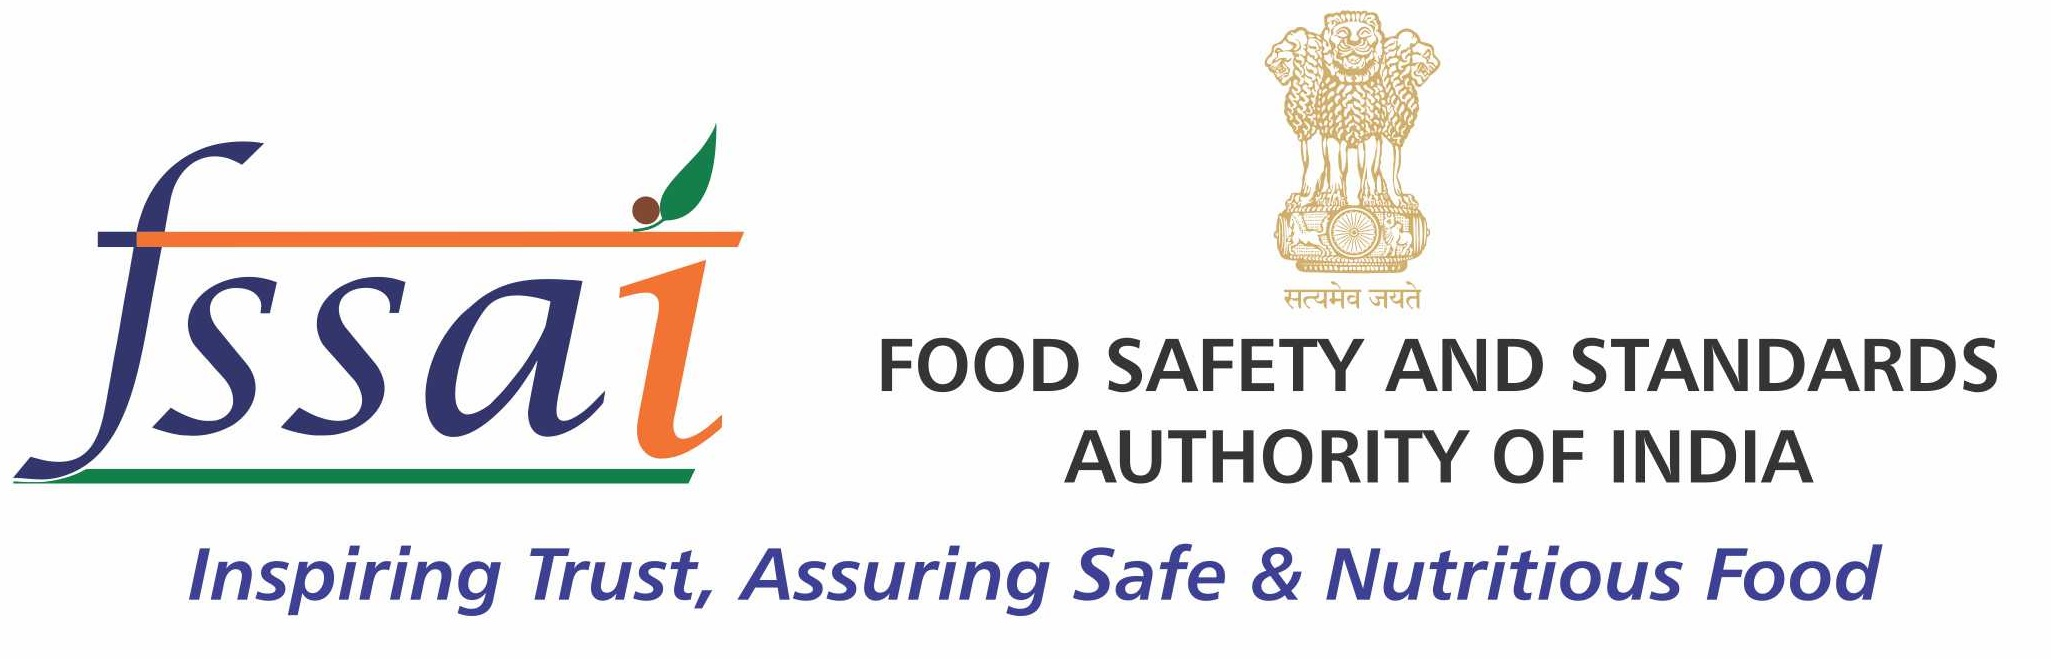 Irradiated Food is Safe - FSSAI issues guidelines and busts myth